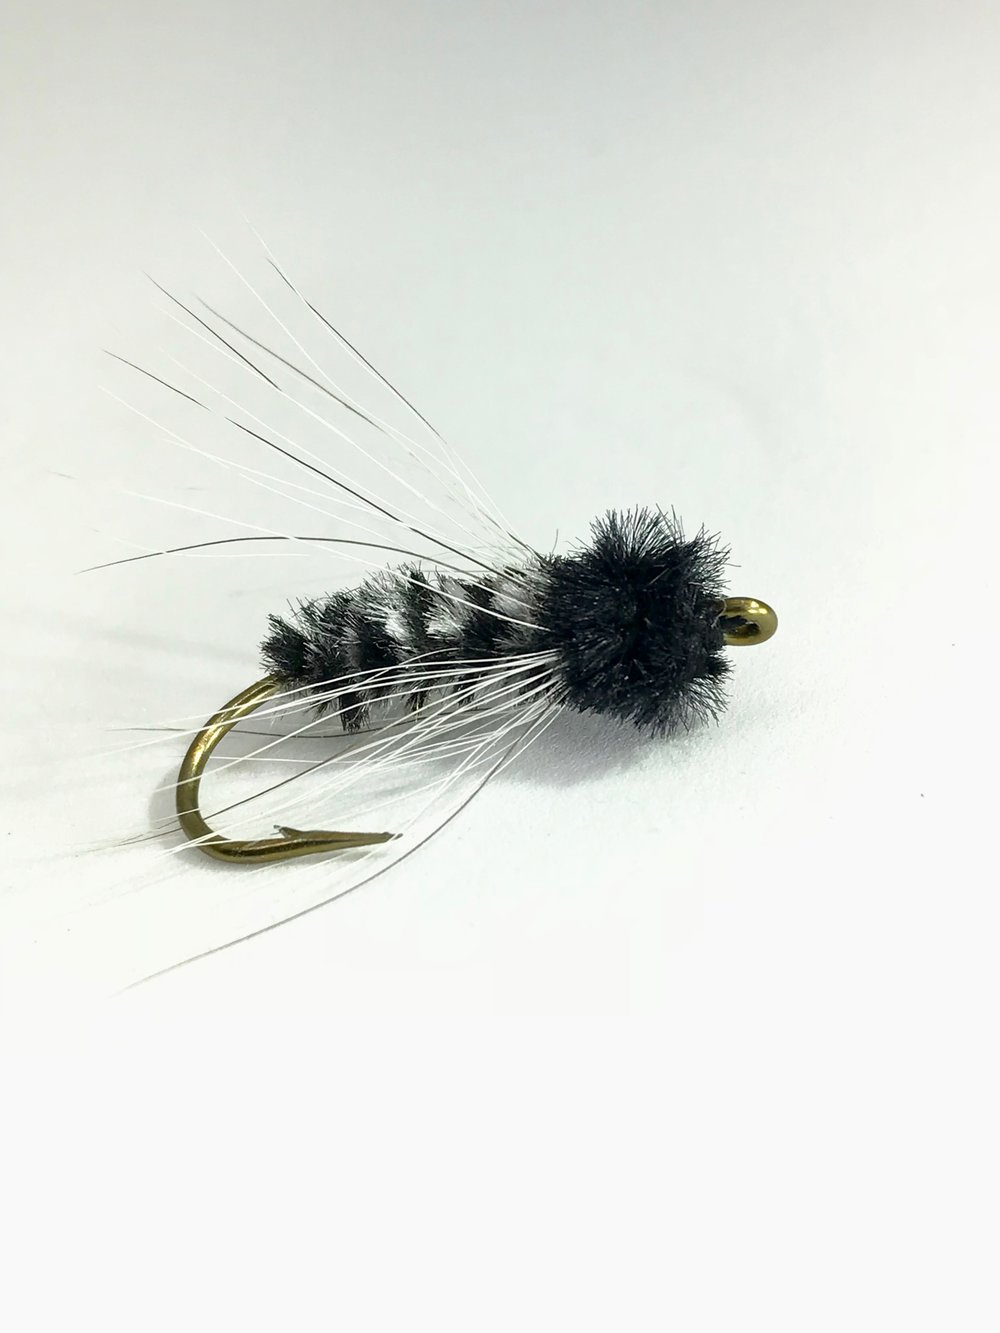 This variation of the James Wood Bucktail is meant to imitate a baby crappie.